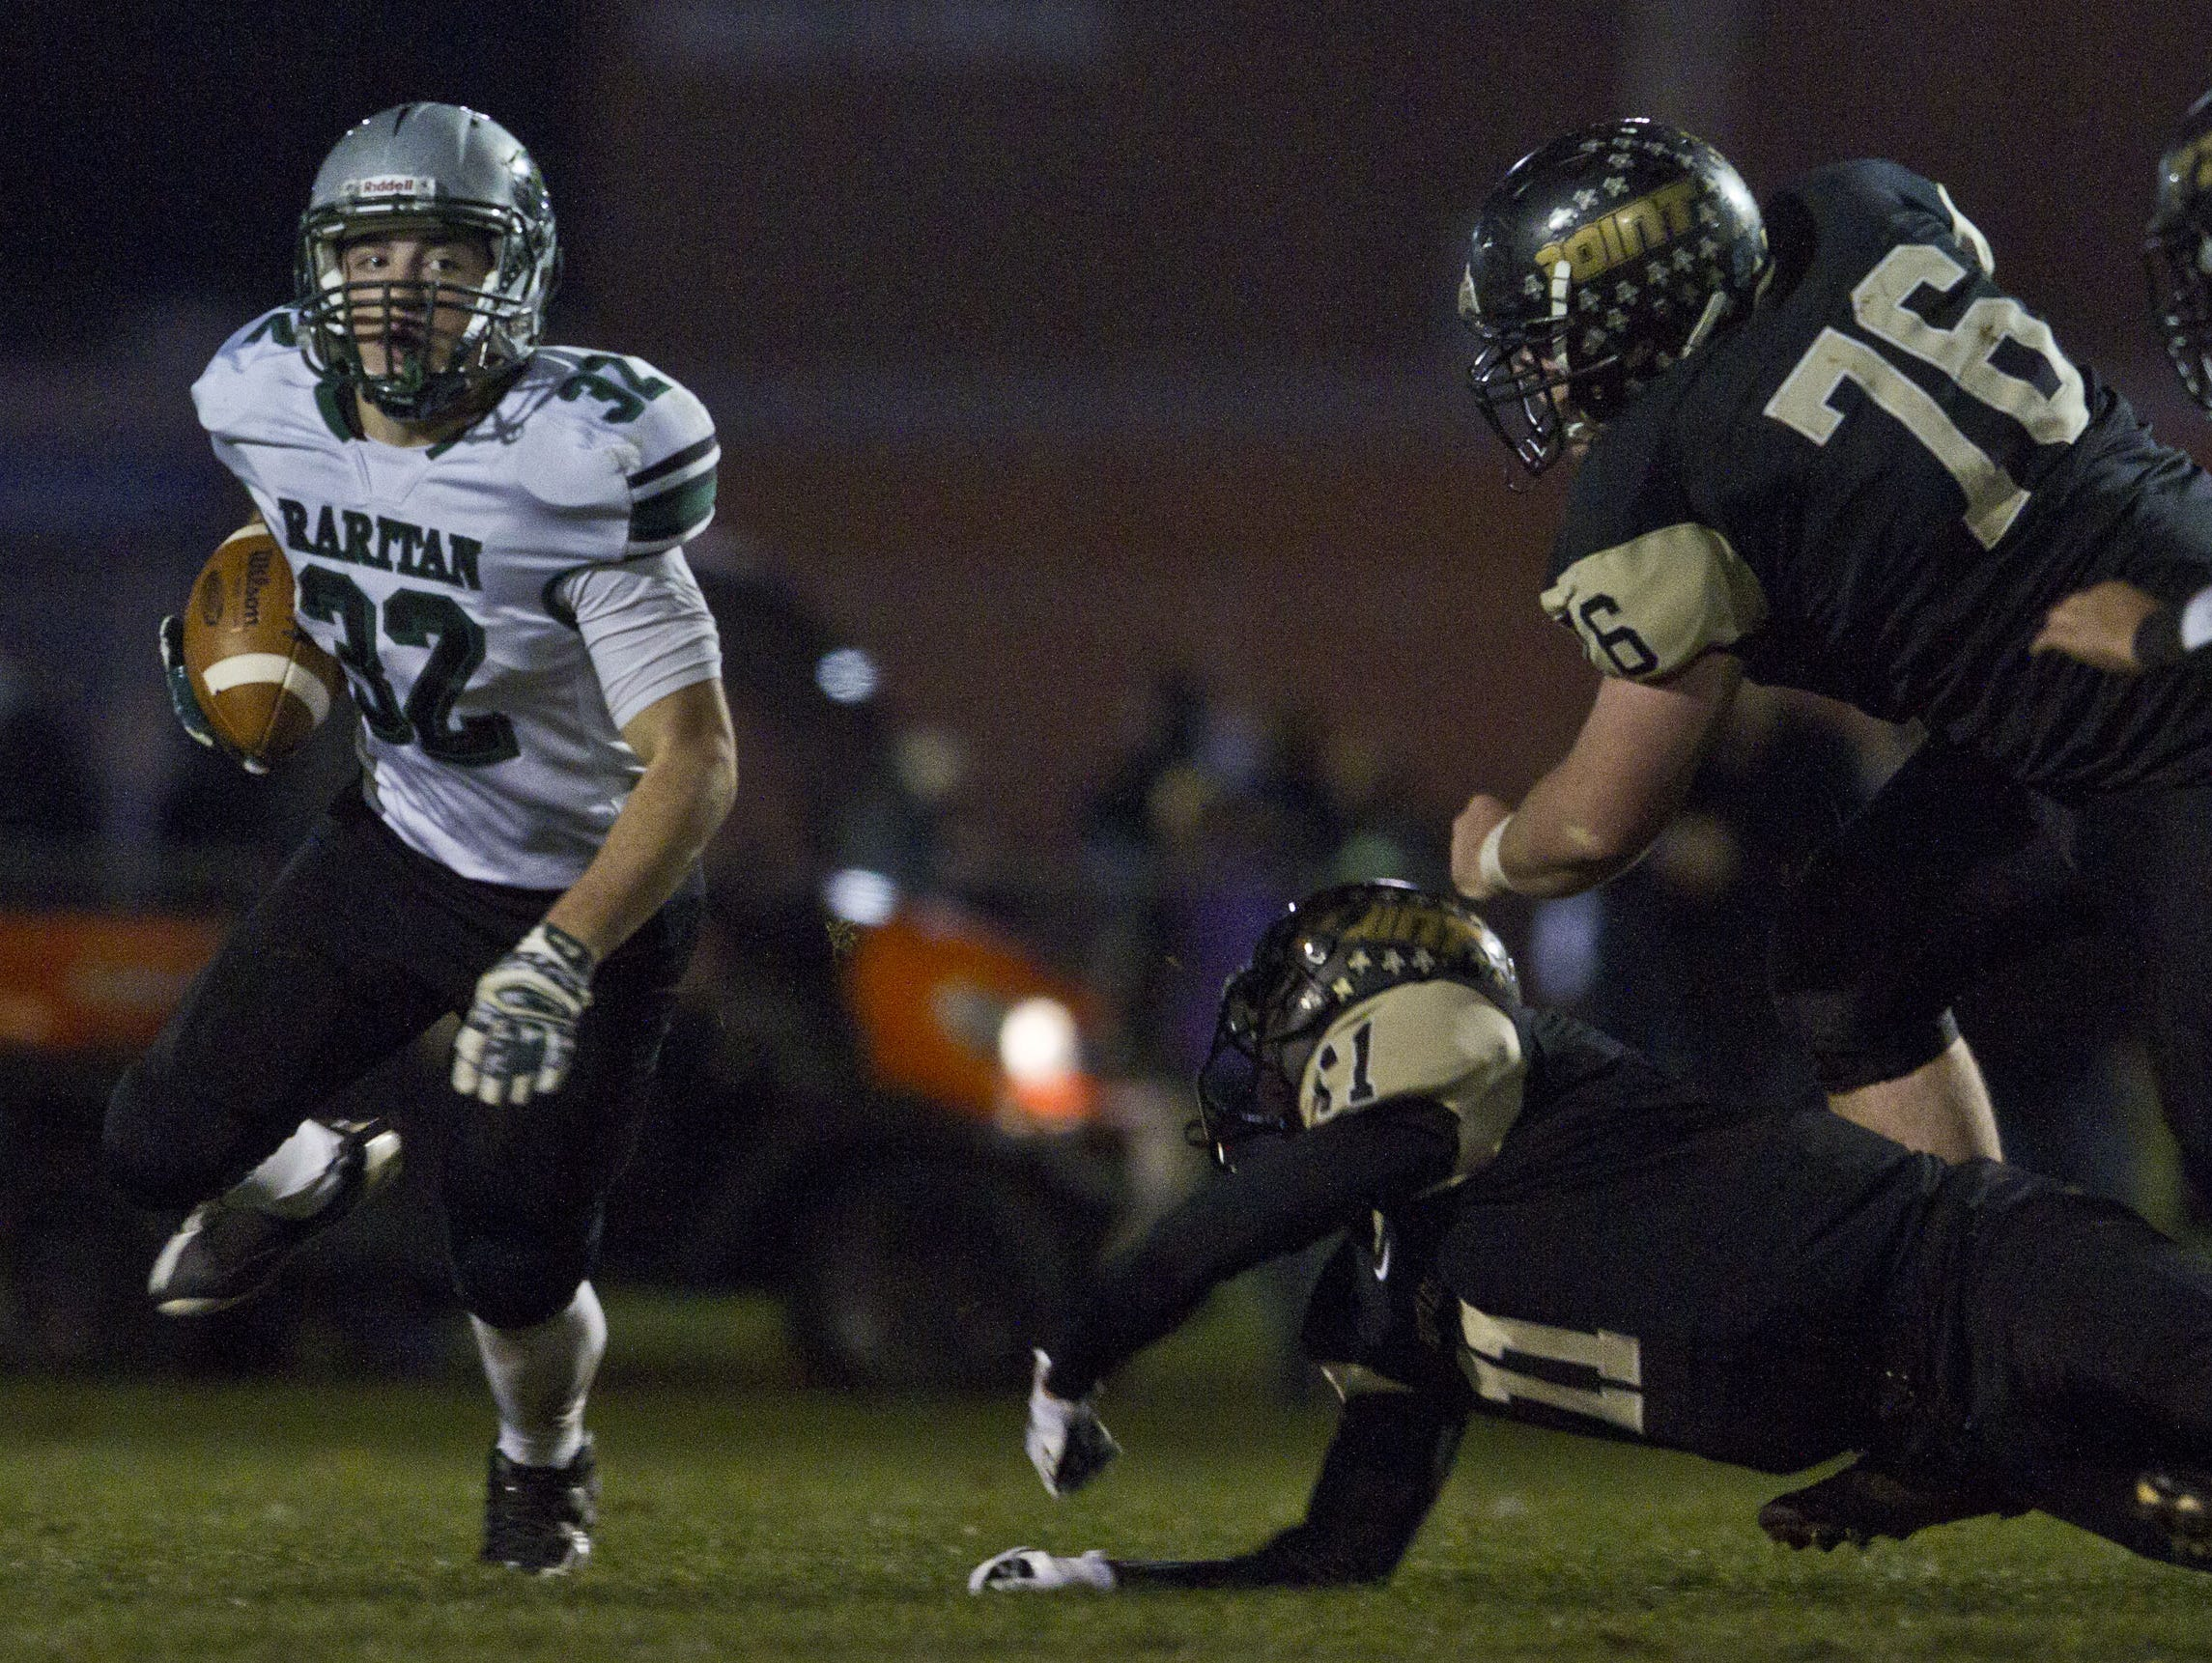 Raritan, with senior running back Derek Ernst leading the way, has been the Shore Conference's biggest surprise in the NJSIAA playoffs.